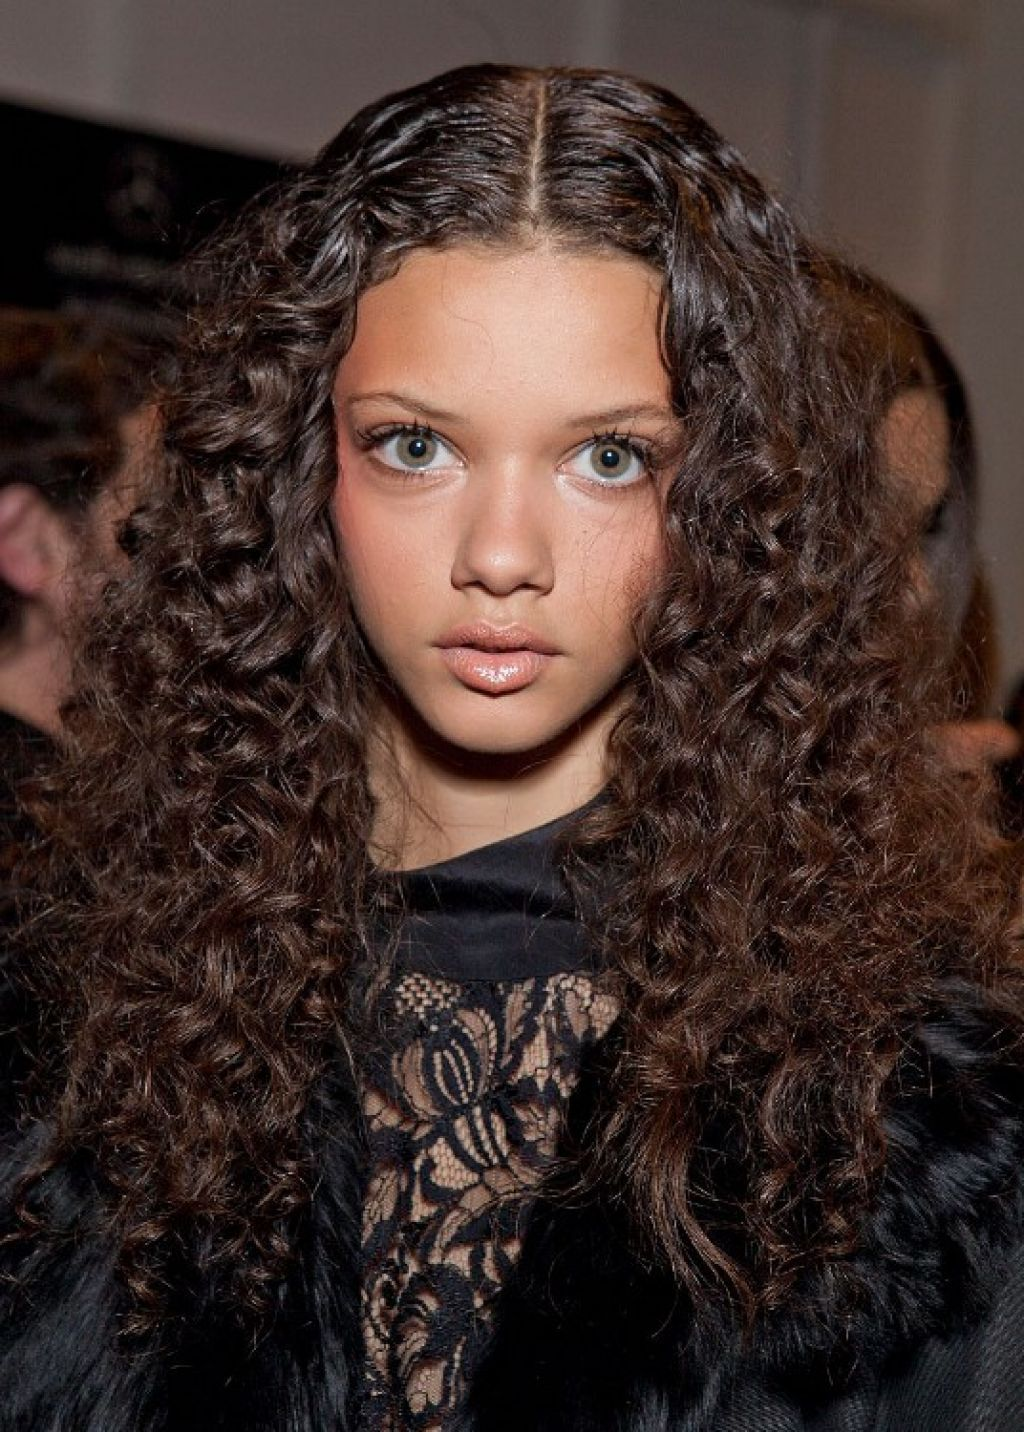 Natural Curly Hairstyles Long Hair This Style Is Called Ombre With Long Curly Hair Middle Curly Hair Styles Naturally Curly Girl Hairstyles Curly Hair Styles